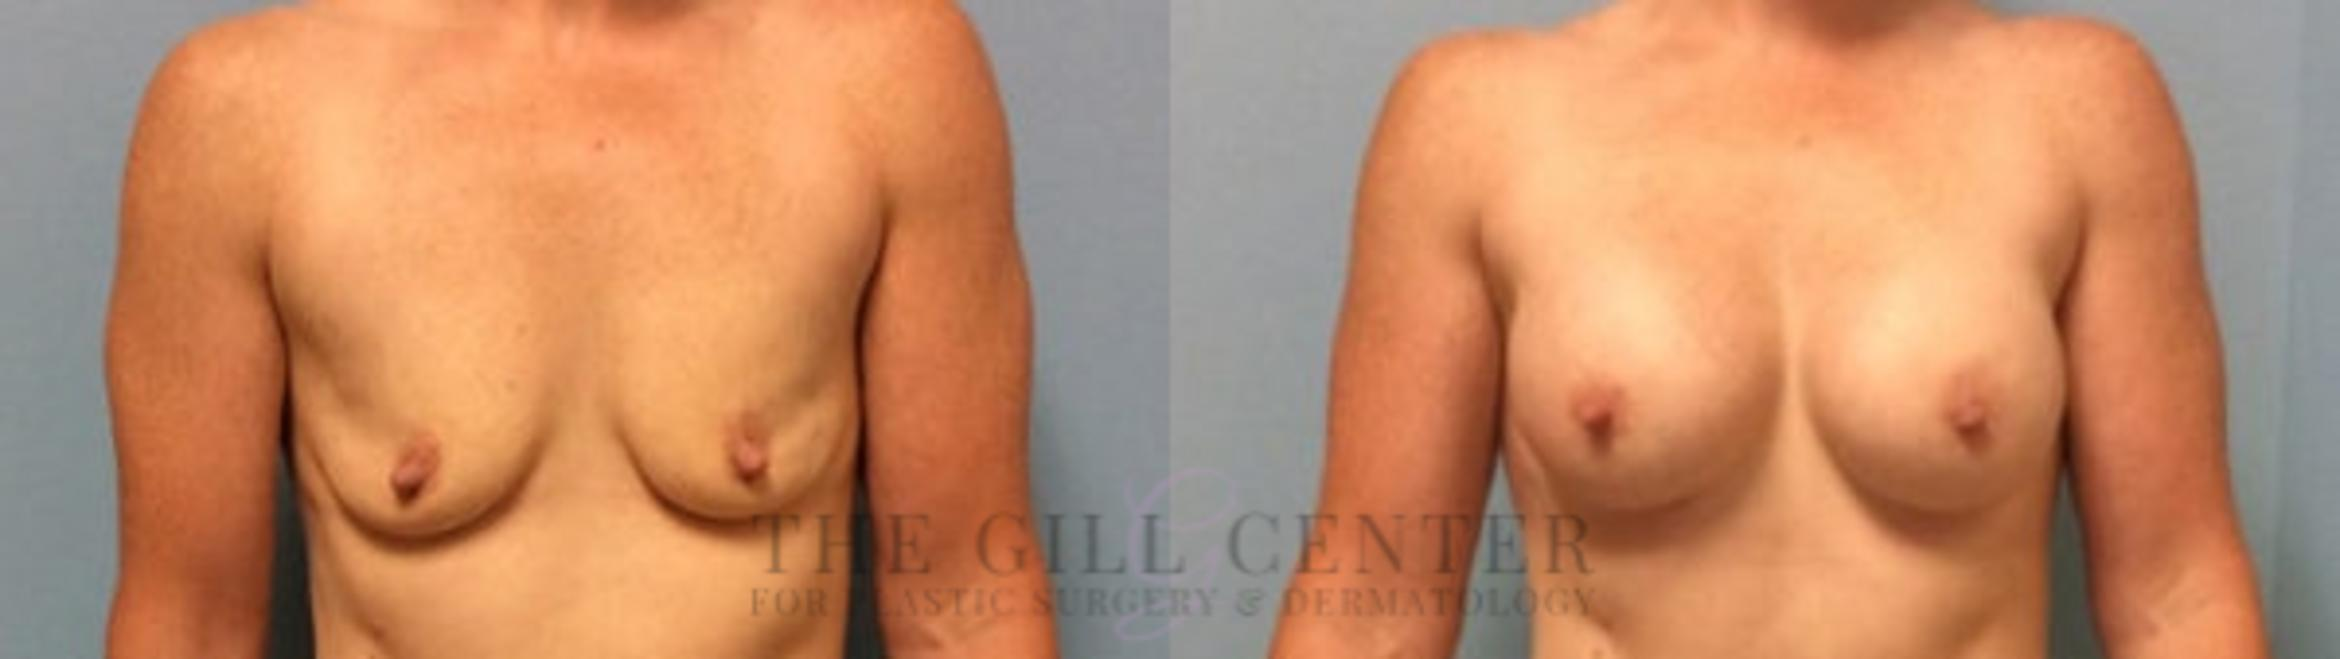 Breast Augmentation Case 431 Before & After Front | Shenandoah, TX | The Gill Center for Plastic Surgery and Dermatology